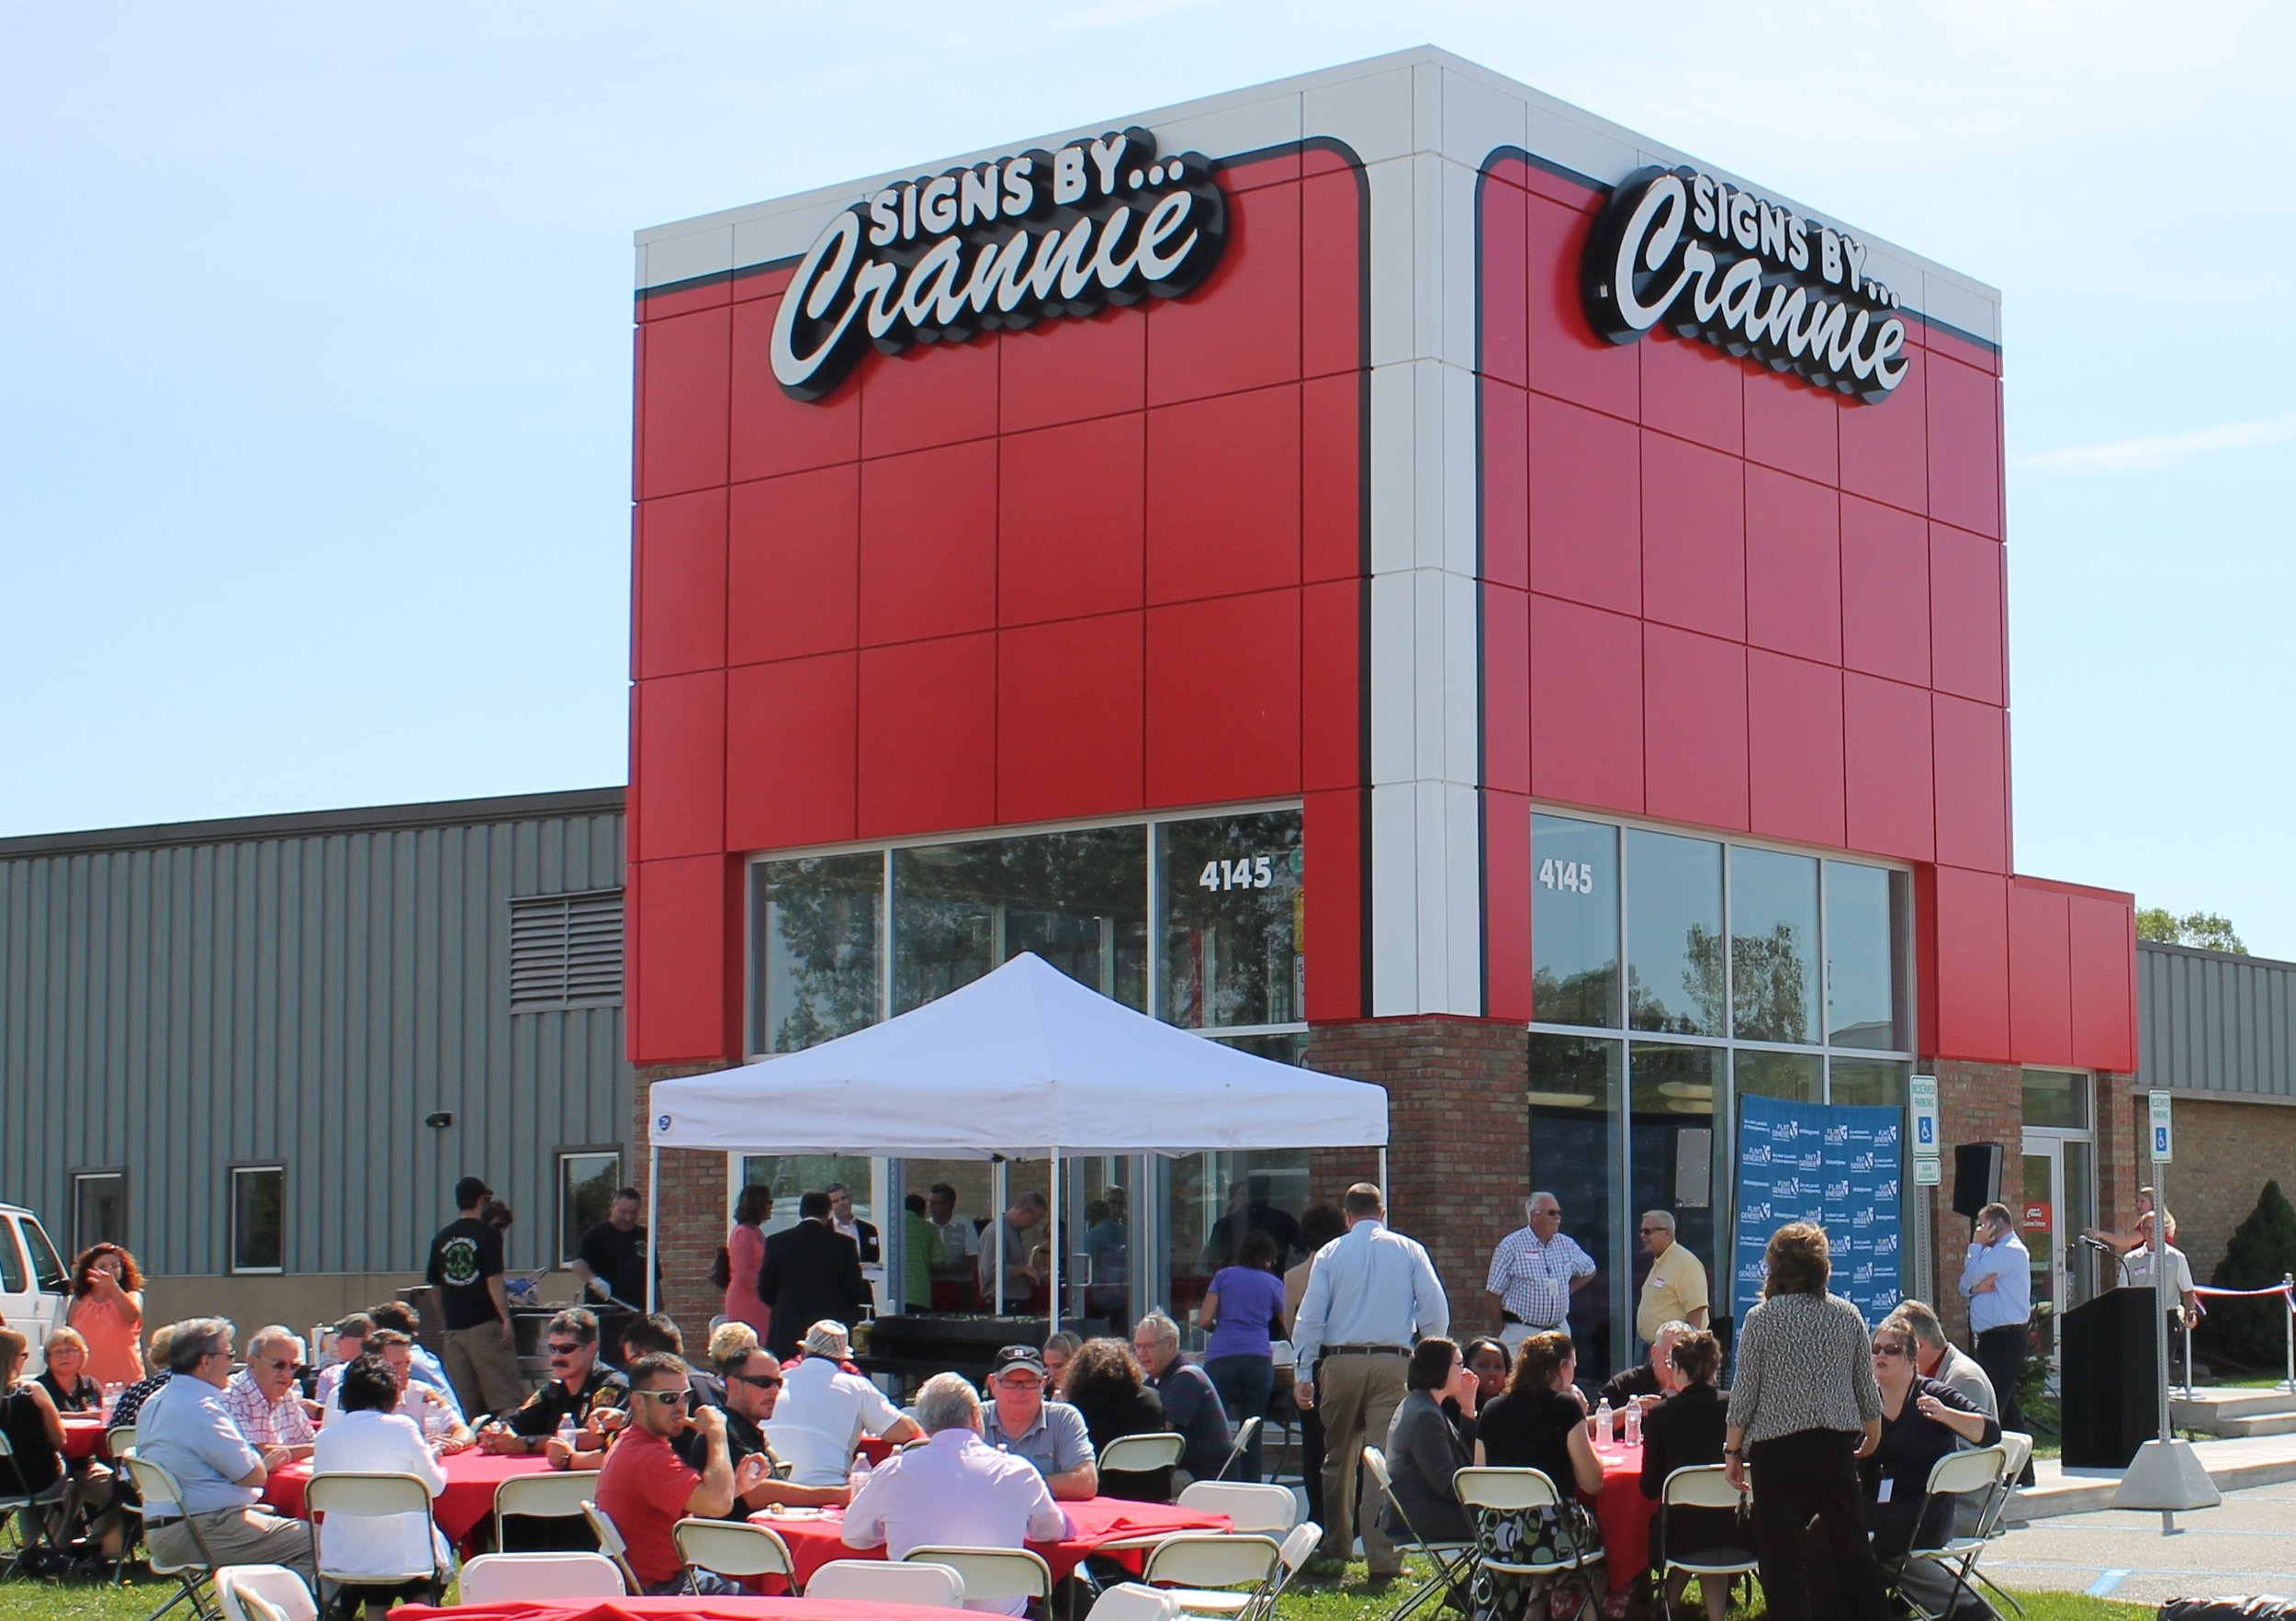 To help establish their corporate identity, H2A worked with Crannie to create a new entrance tower that also include space to show off Dan's vintage pickup truck.